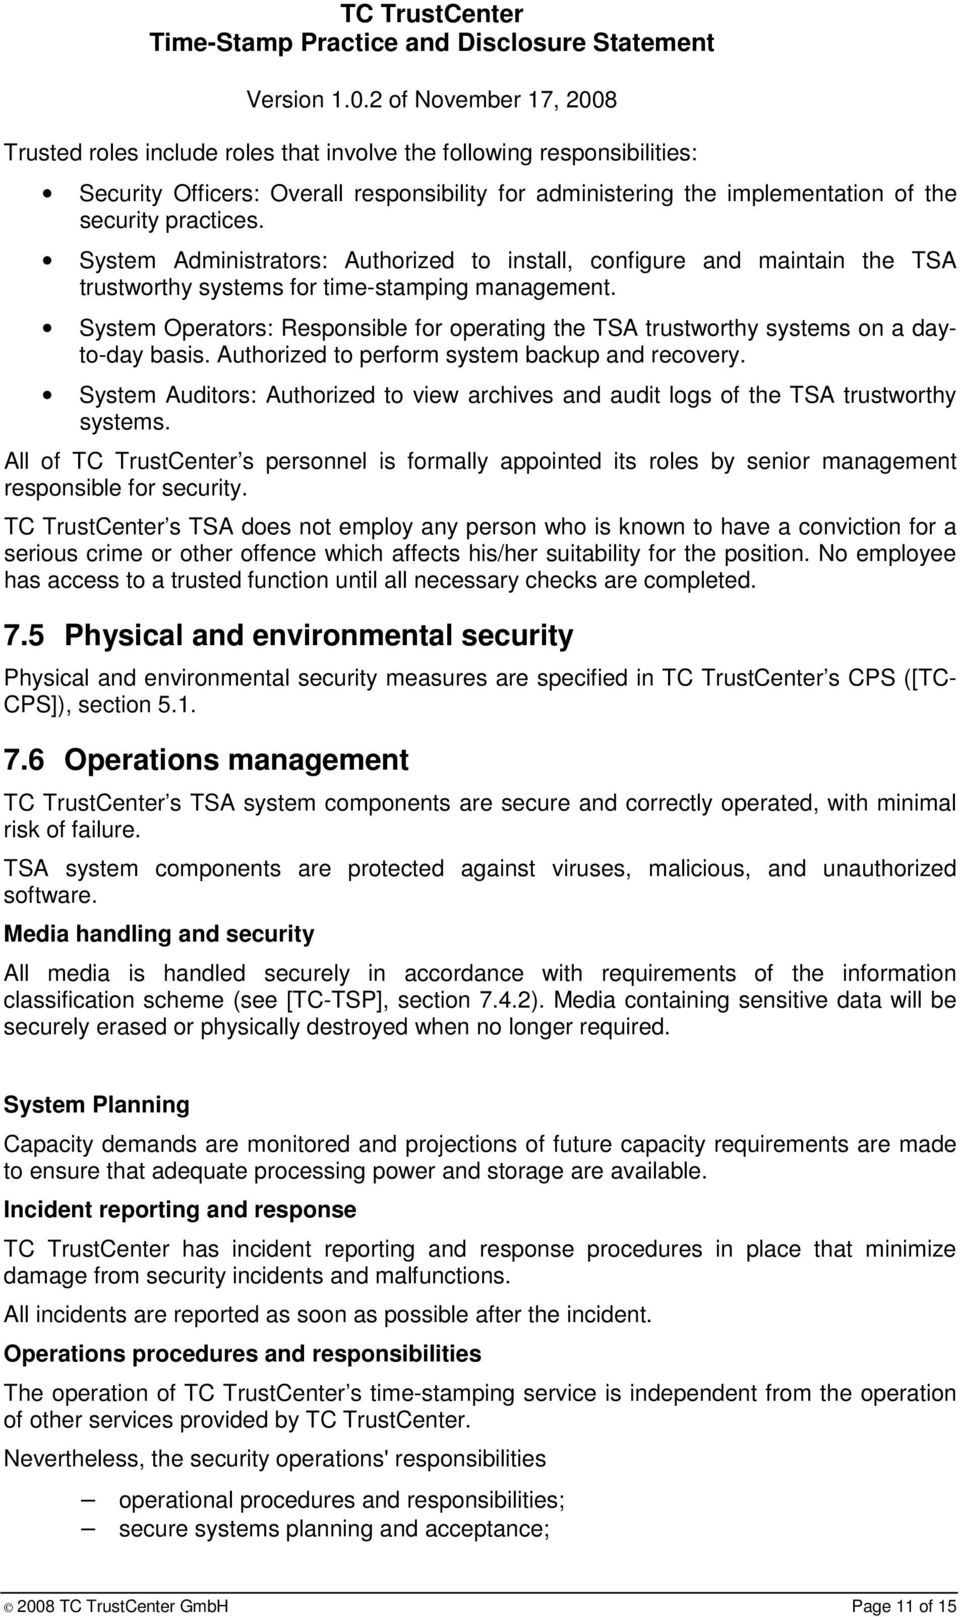 System Operators: Responsible for operating the TSA trustworthy systems on a dayto-day basis. Authorized to perform system backup and recovery.